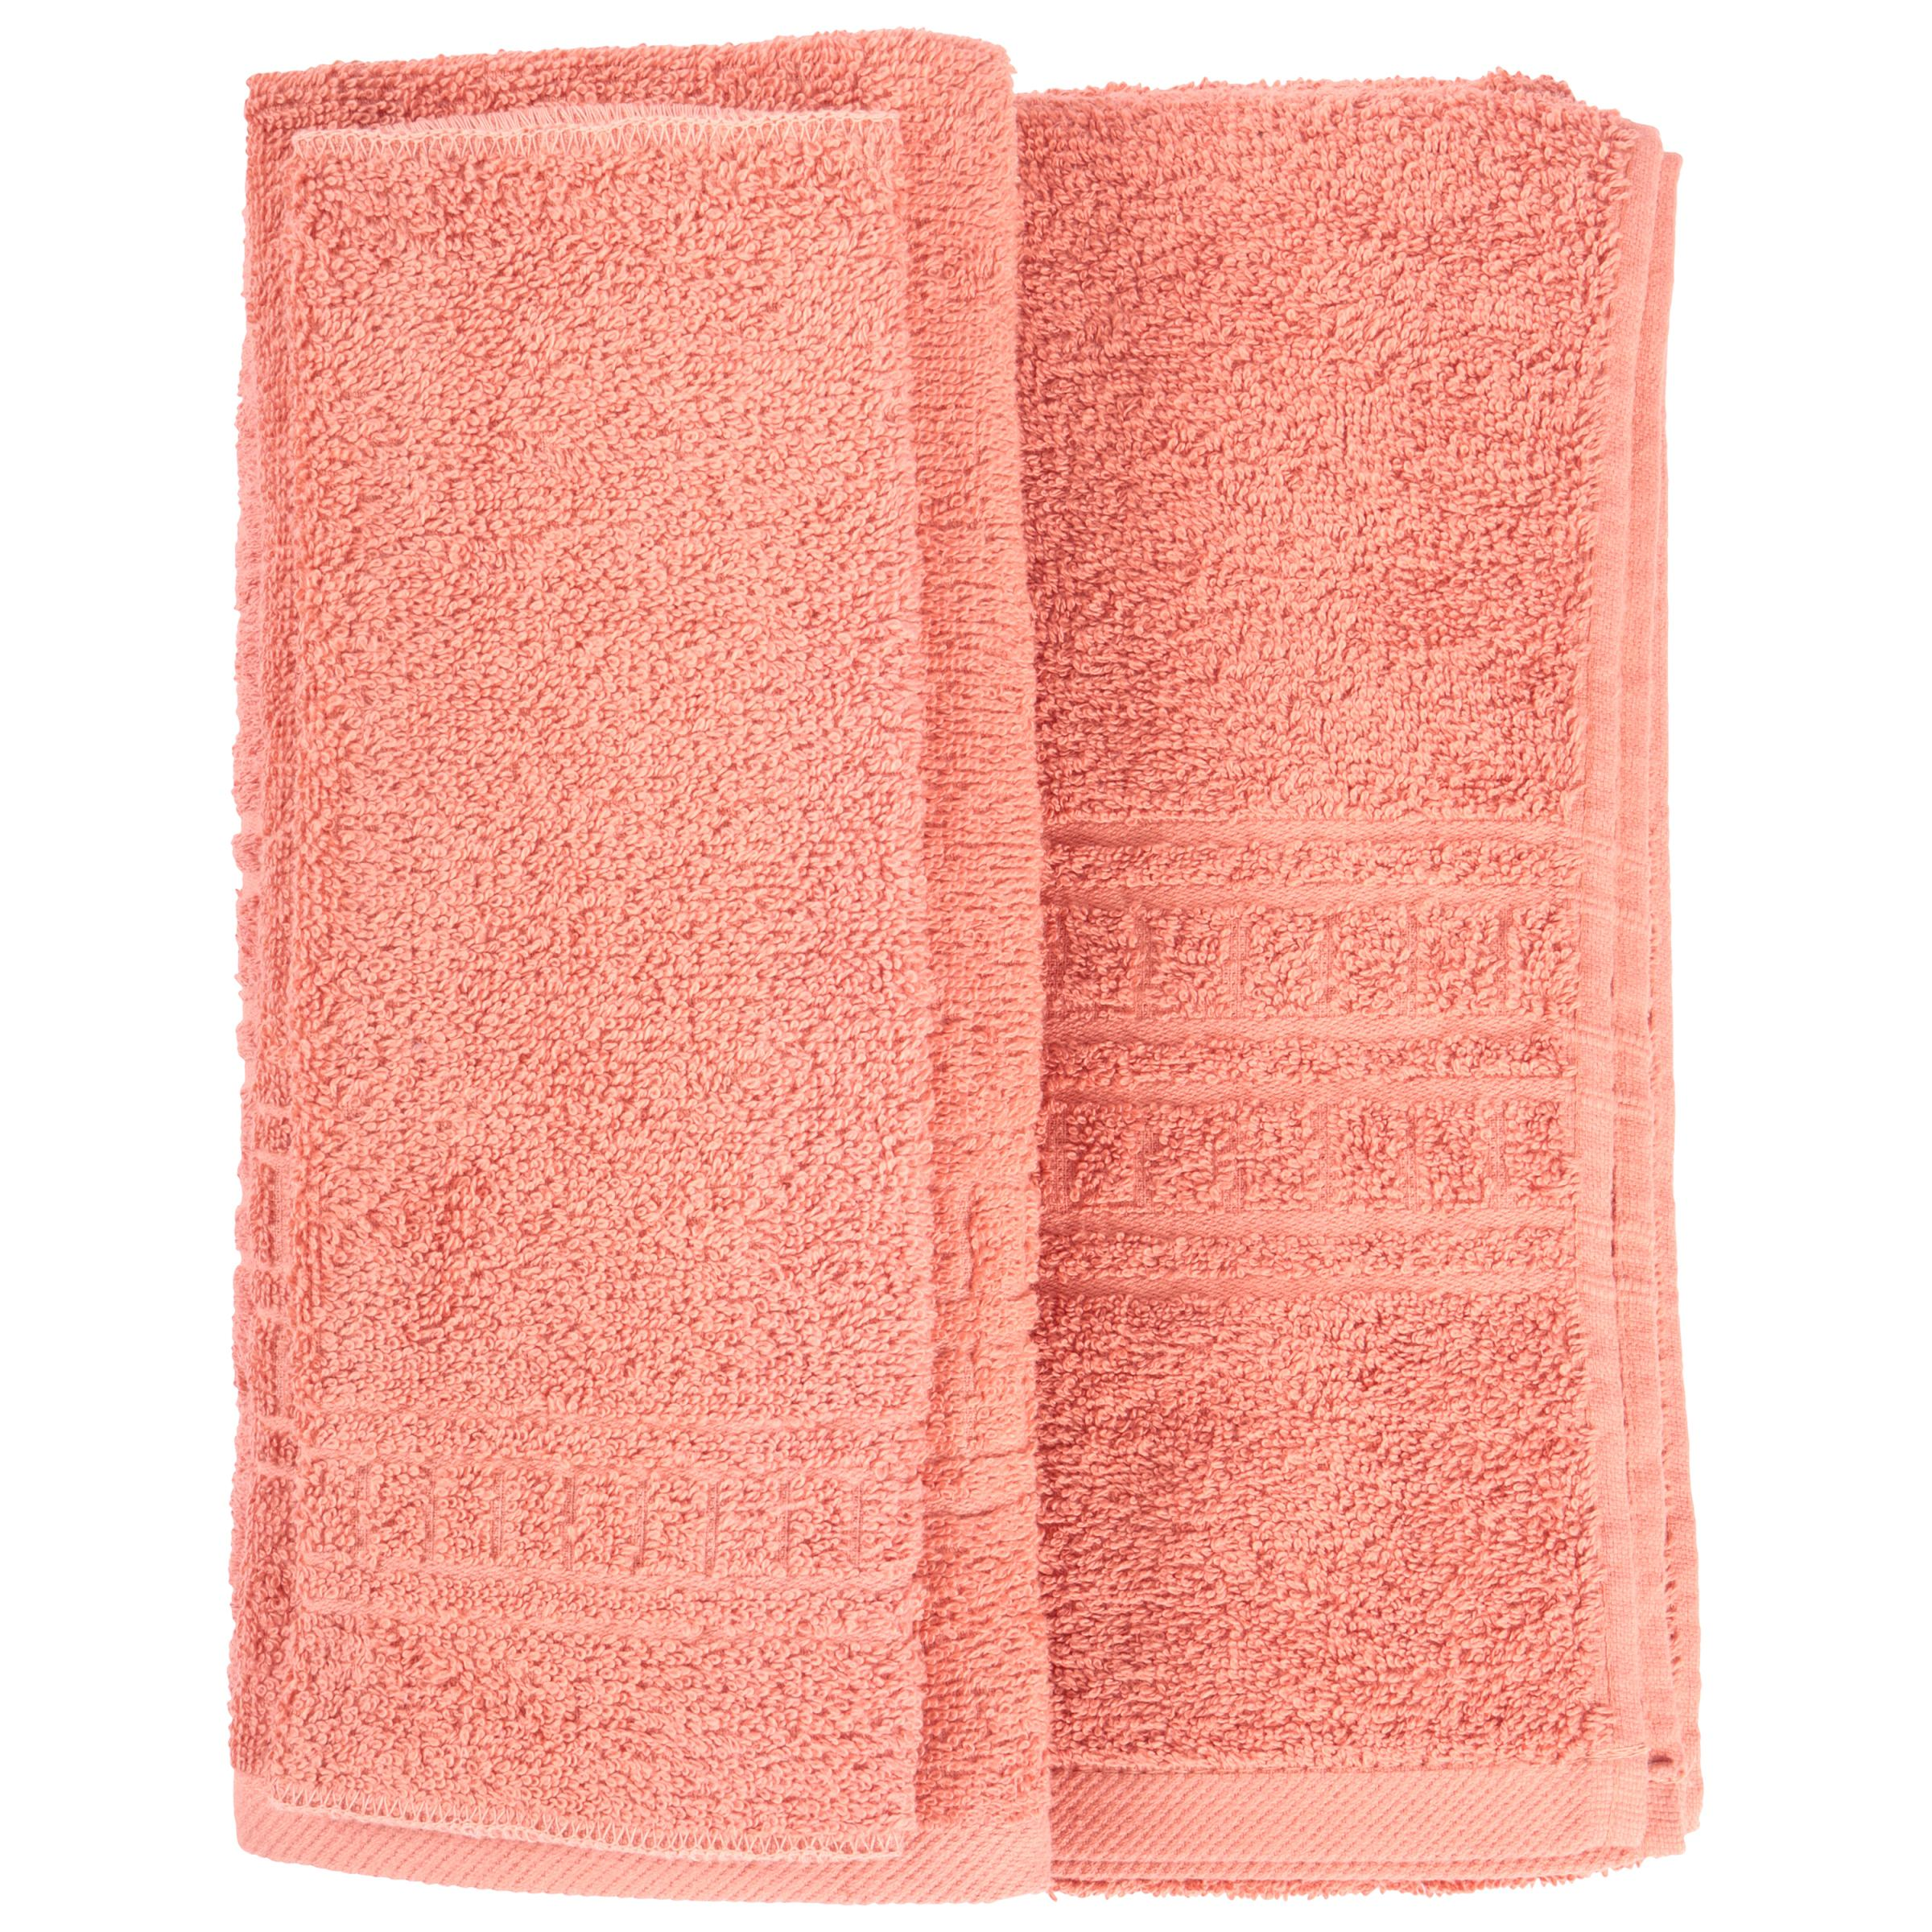 Revere Mills Soho Oversized Super Soft Ringspun Cotton 6-Piece Towel Set